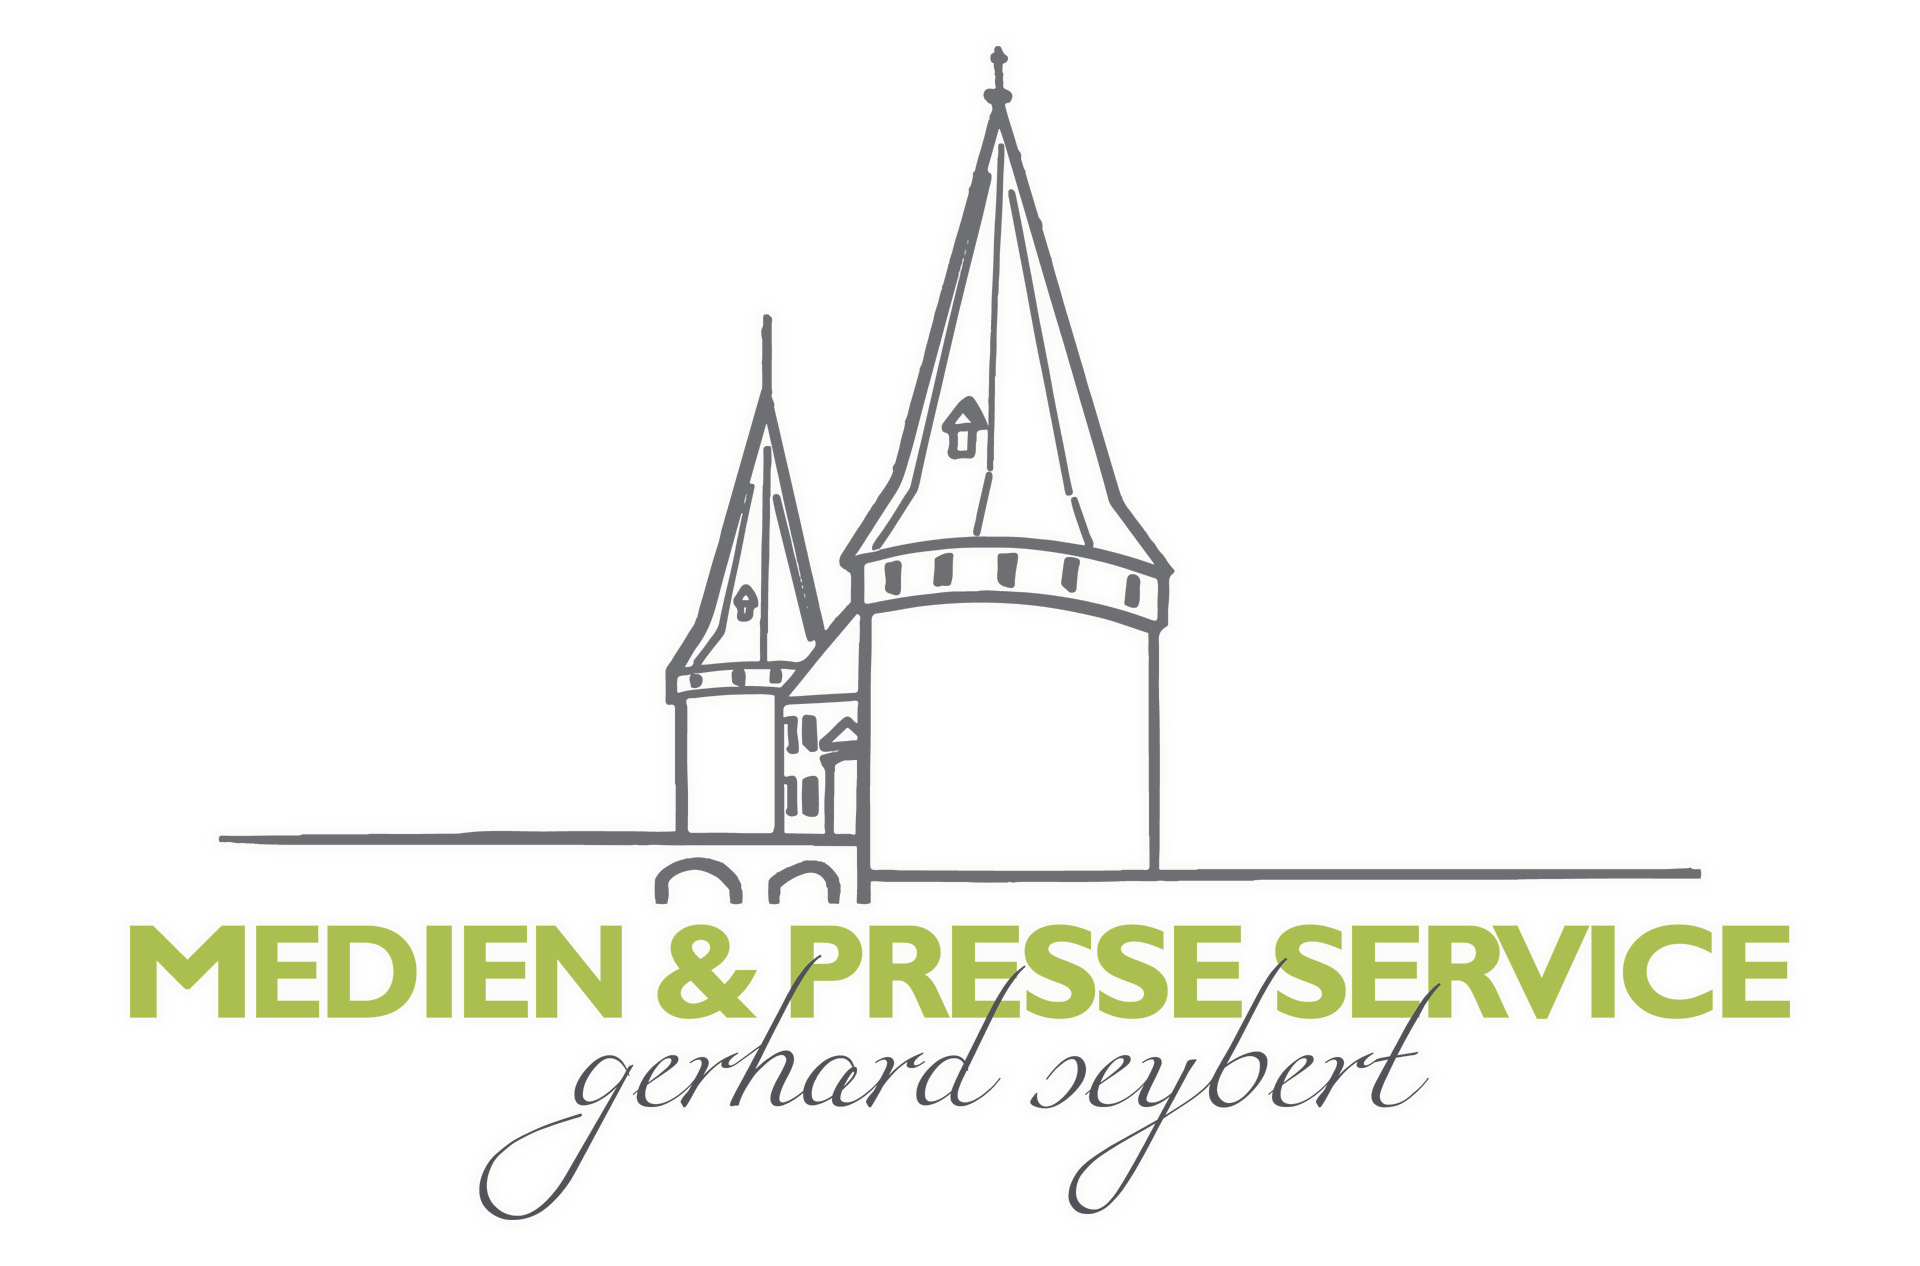 medien & Presse Service Gerhard Seybert